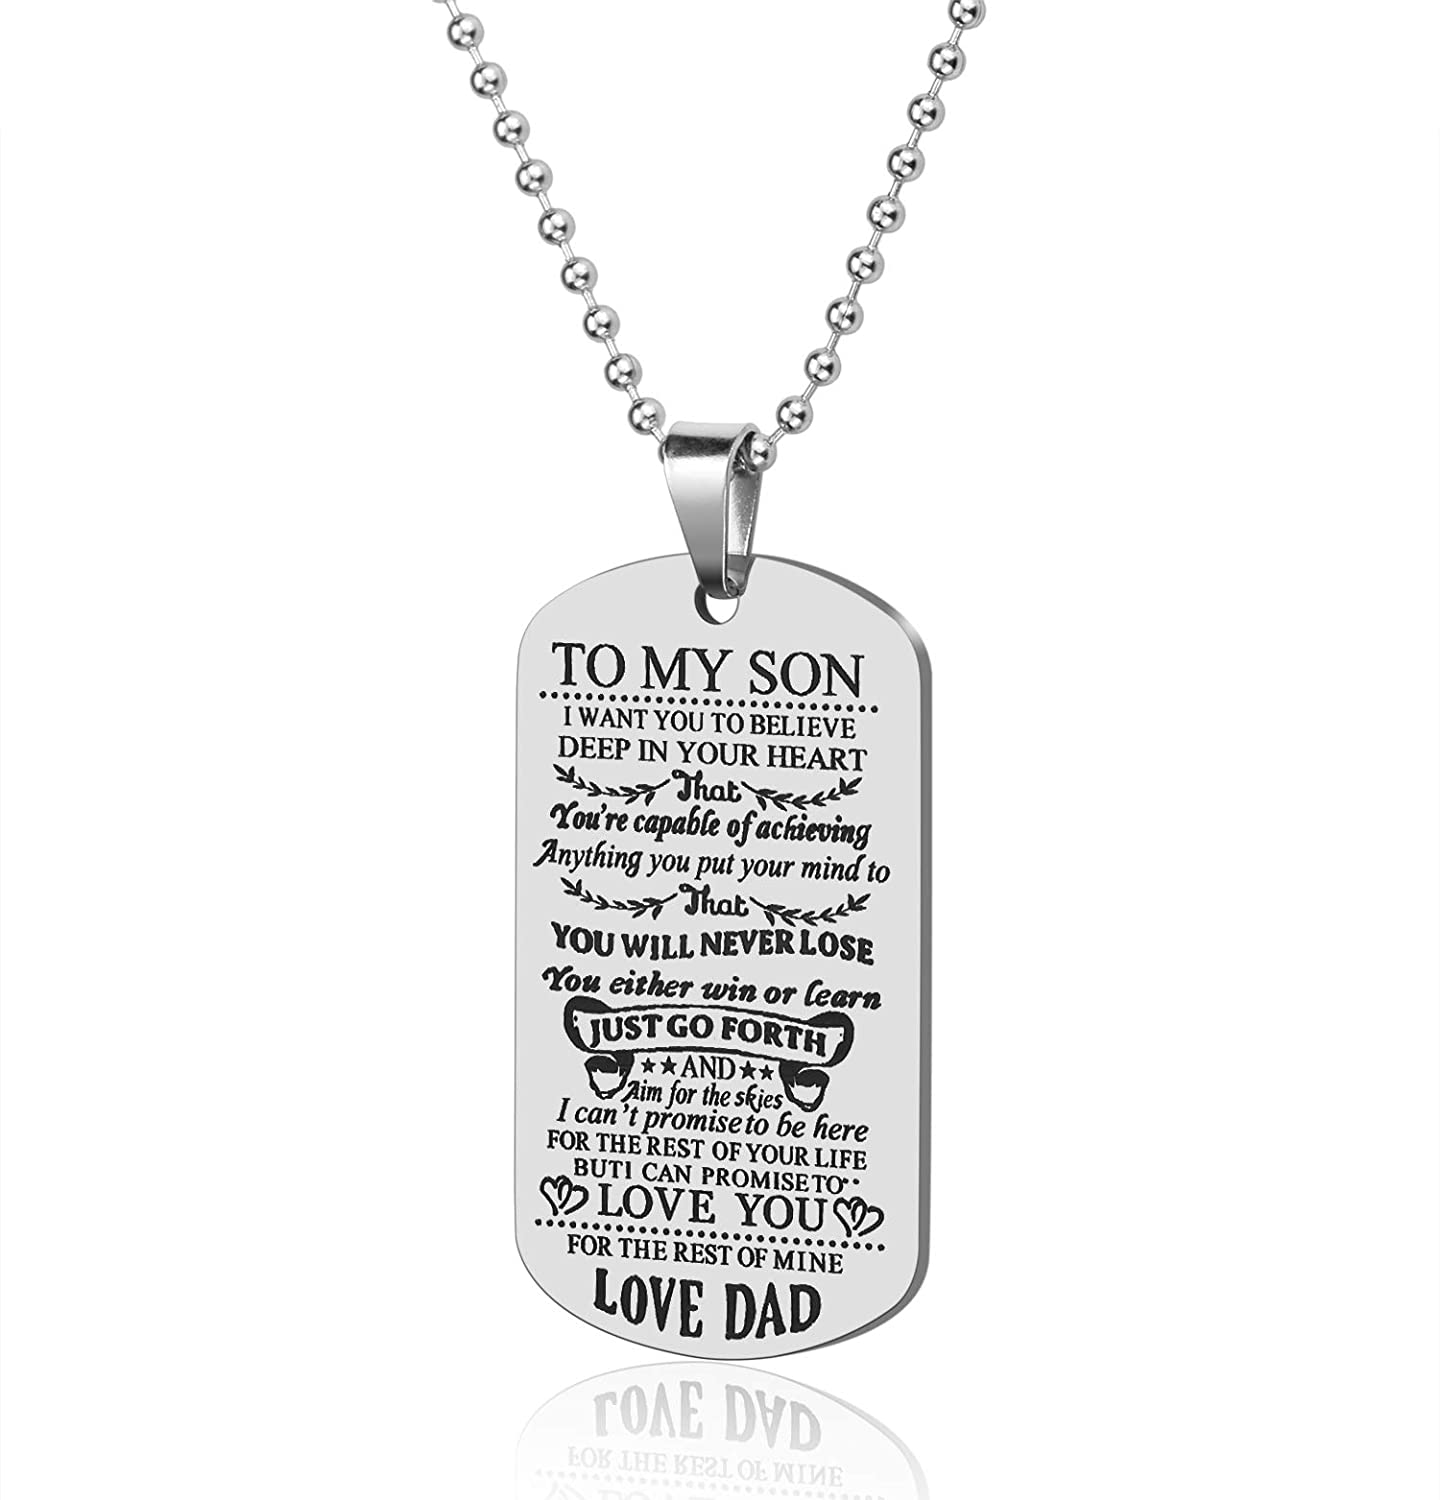 Lcbulu Dad to Son Necklace, to My Son Dog Tag Pendant Necklace, Father to Son Gifts for Boys Kids, Son Gift from Dad, Inspirational Son Necklace Inspirational Son Necklace (Dad to Son)